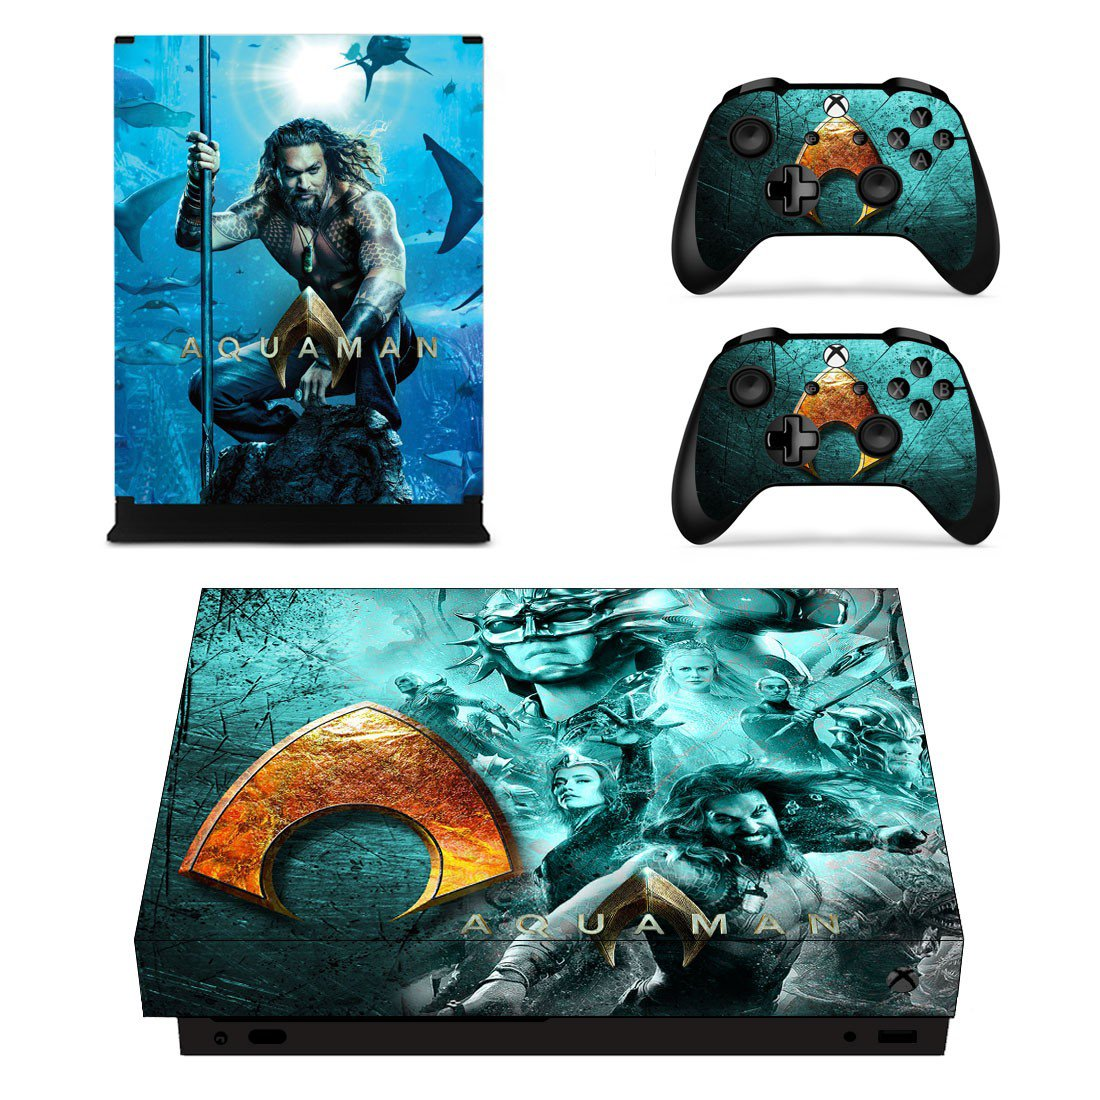 AquaMan decal skin sticker for Xbox One X console and controllers